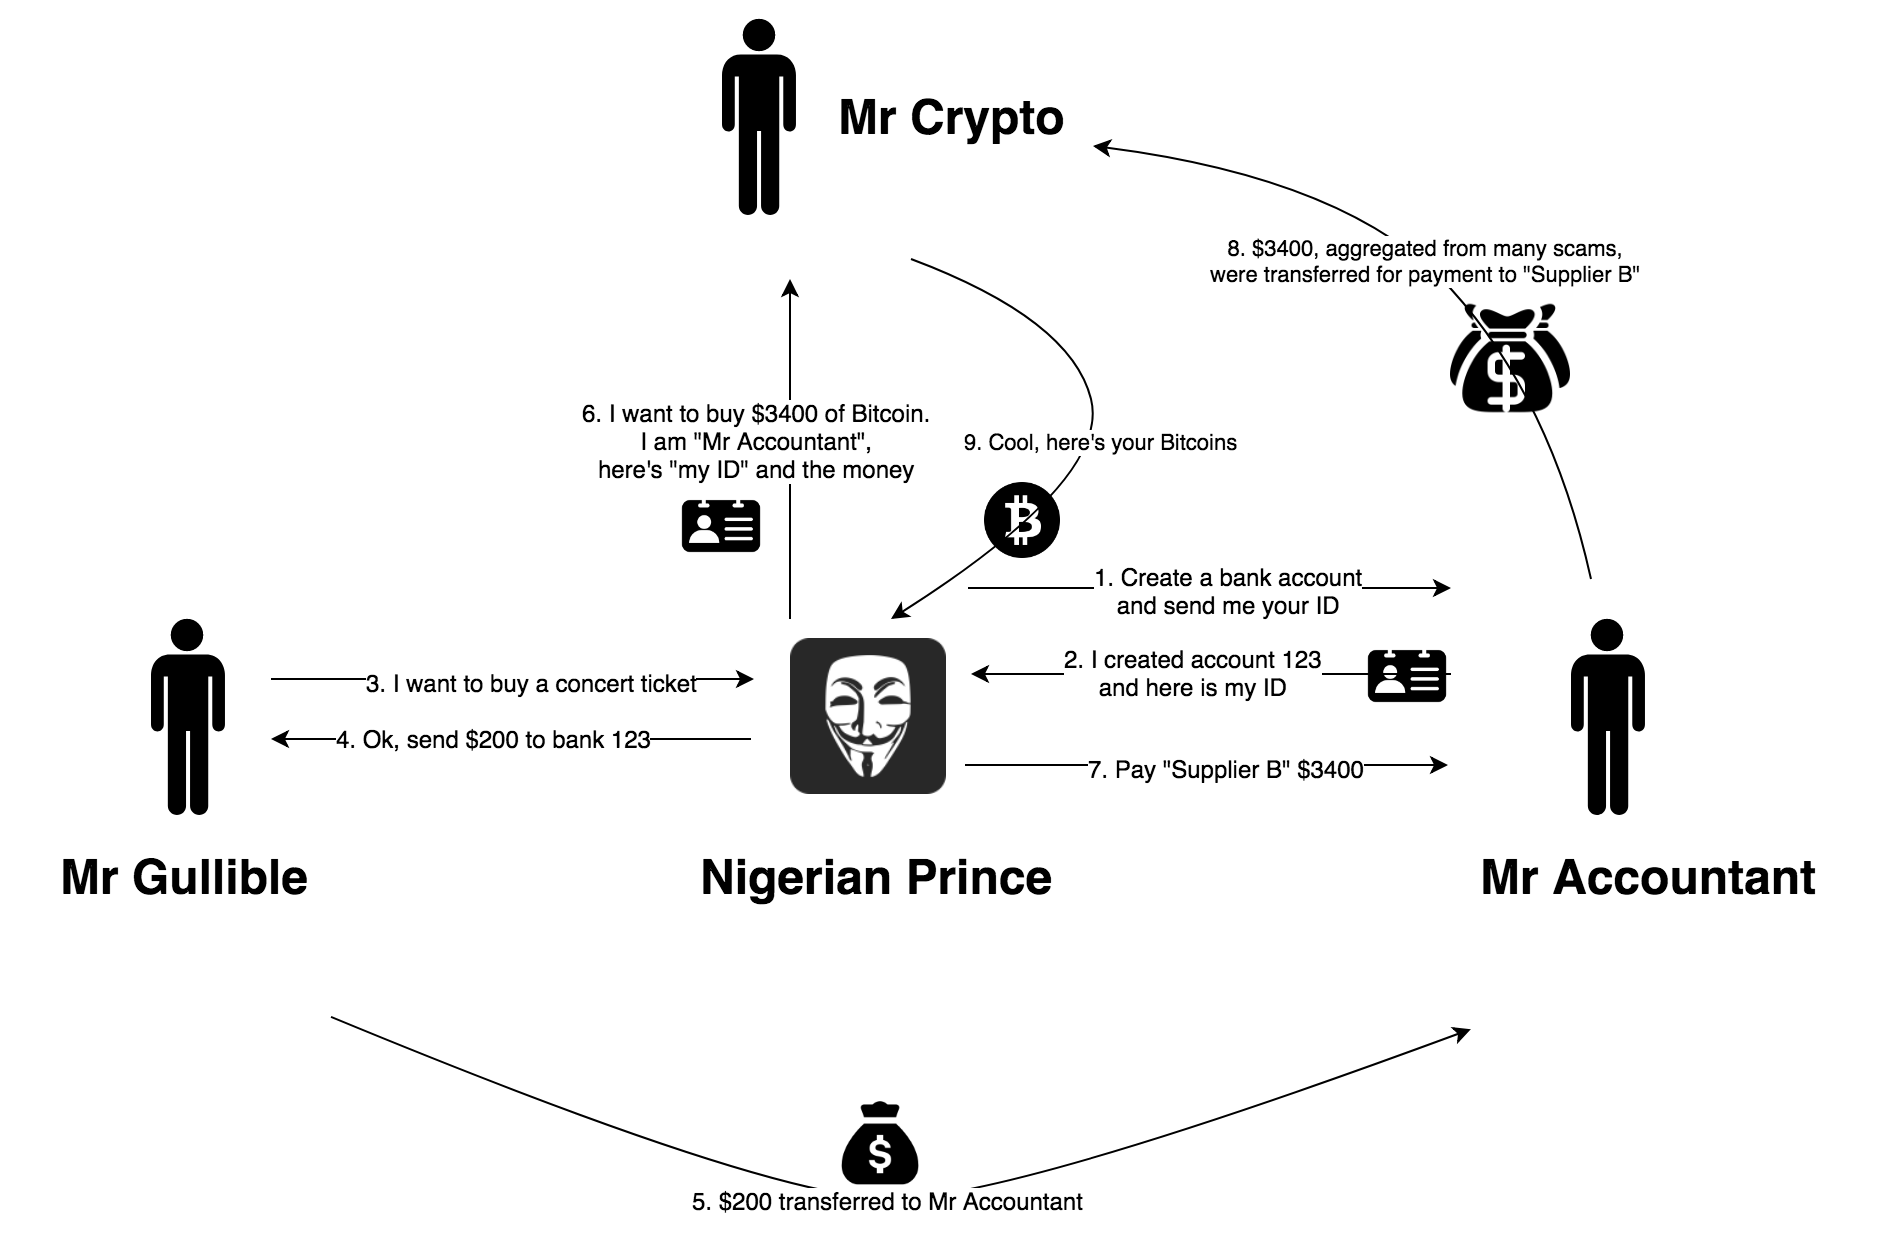 Flowchart showing how the scam took place